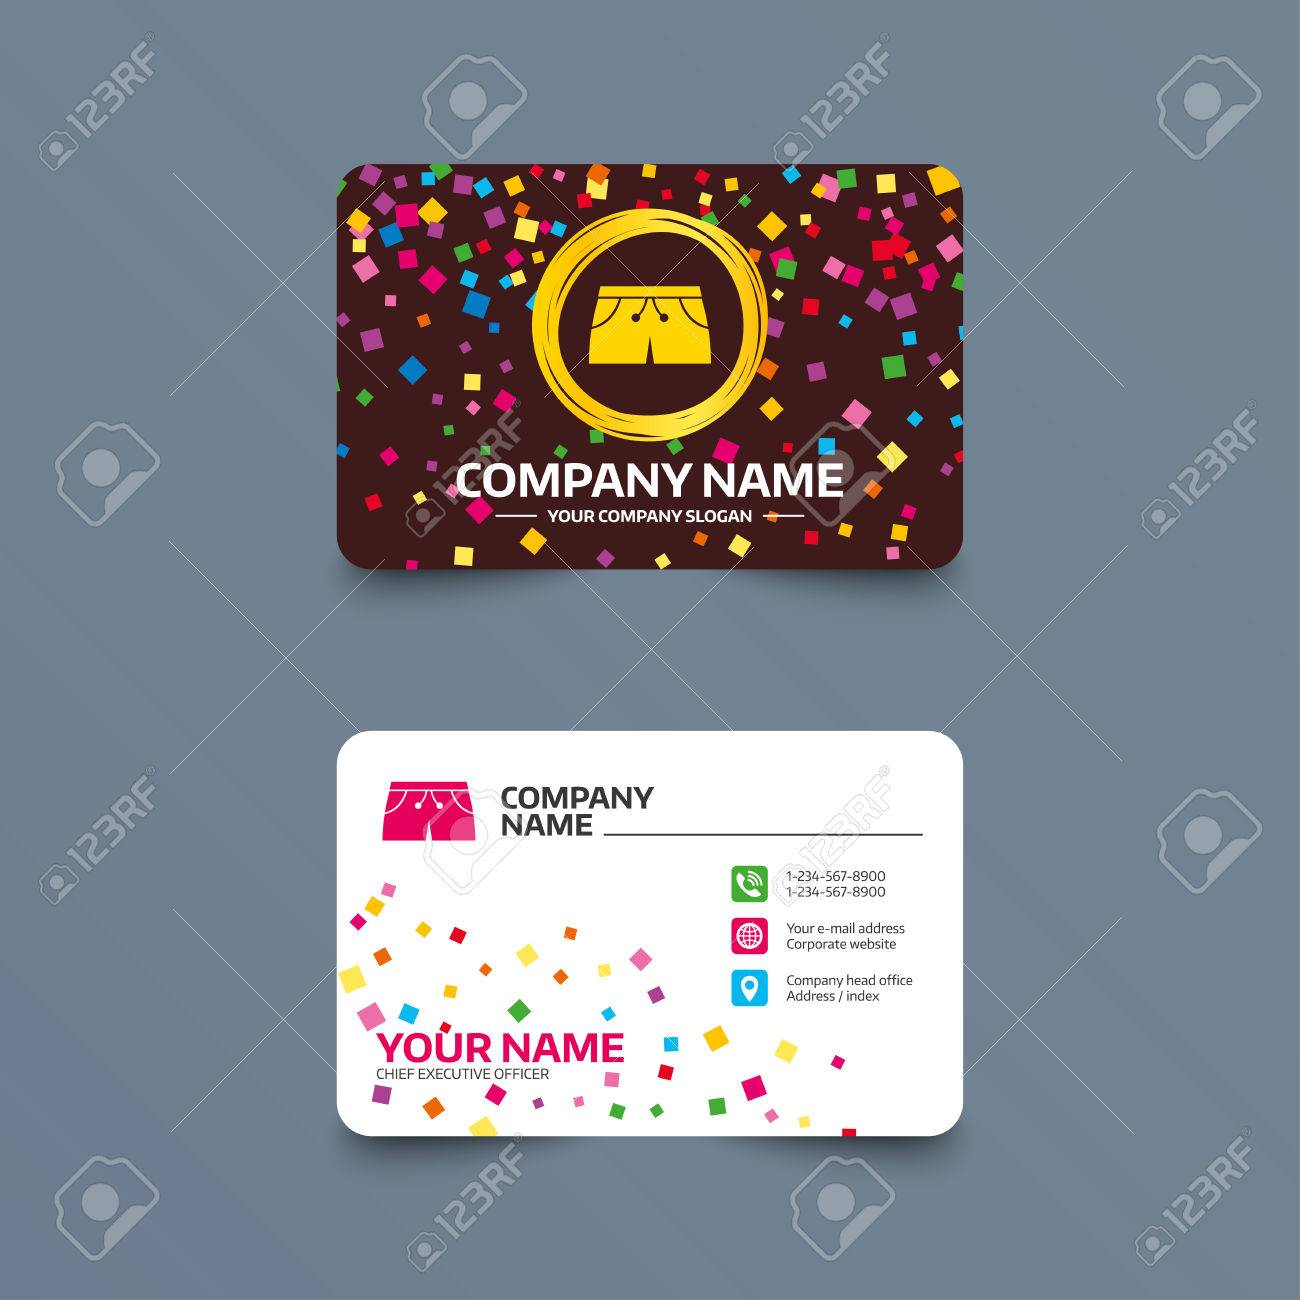 Business card template with confetti pieces womens sport shorts business card template with confetti pieces womens sport shorts sign icon clothing symbol reheart Gallery